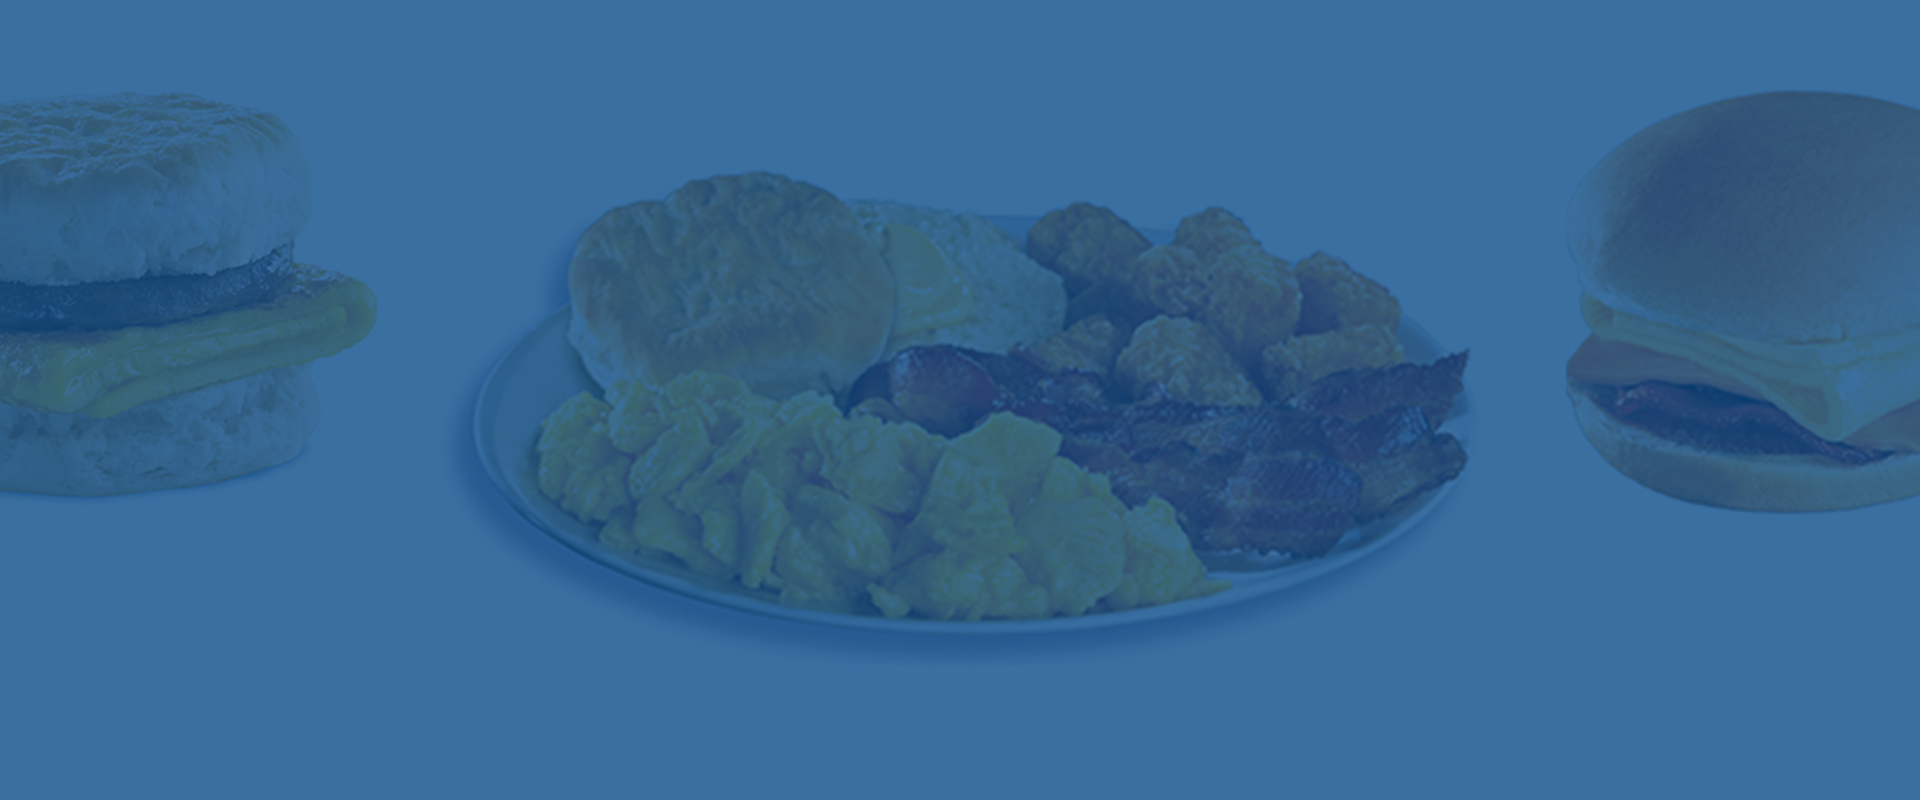 breakfast header